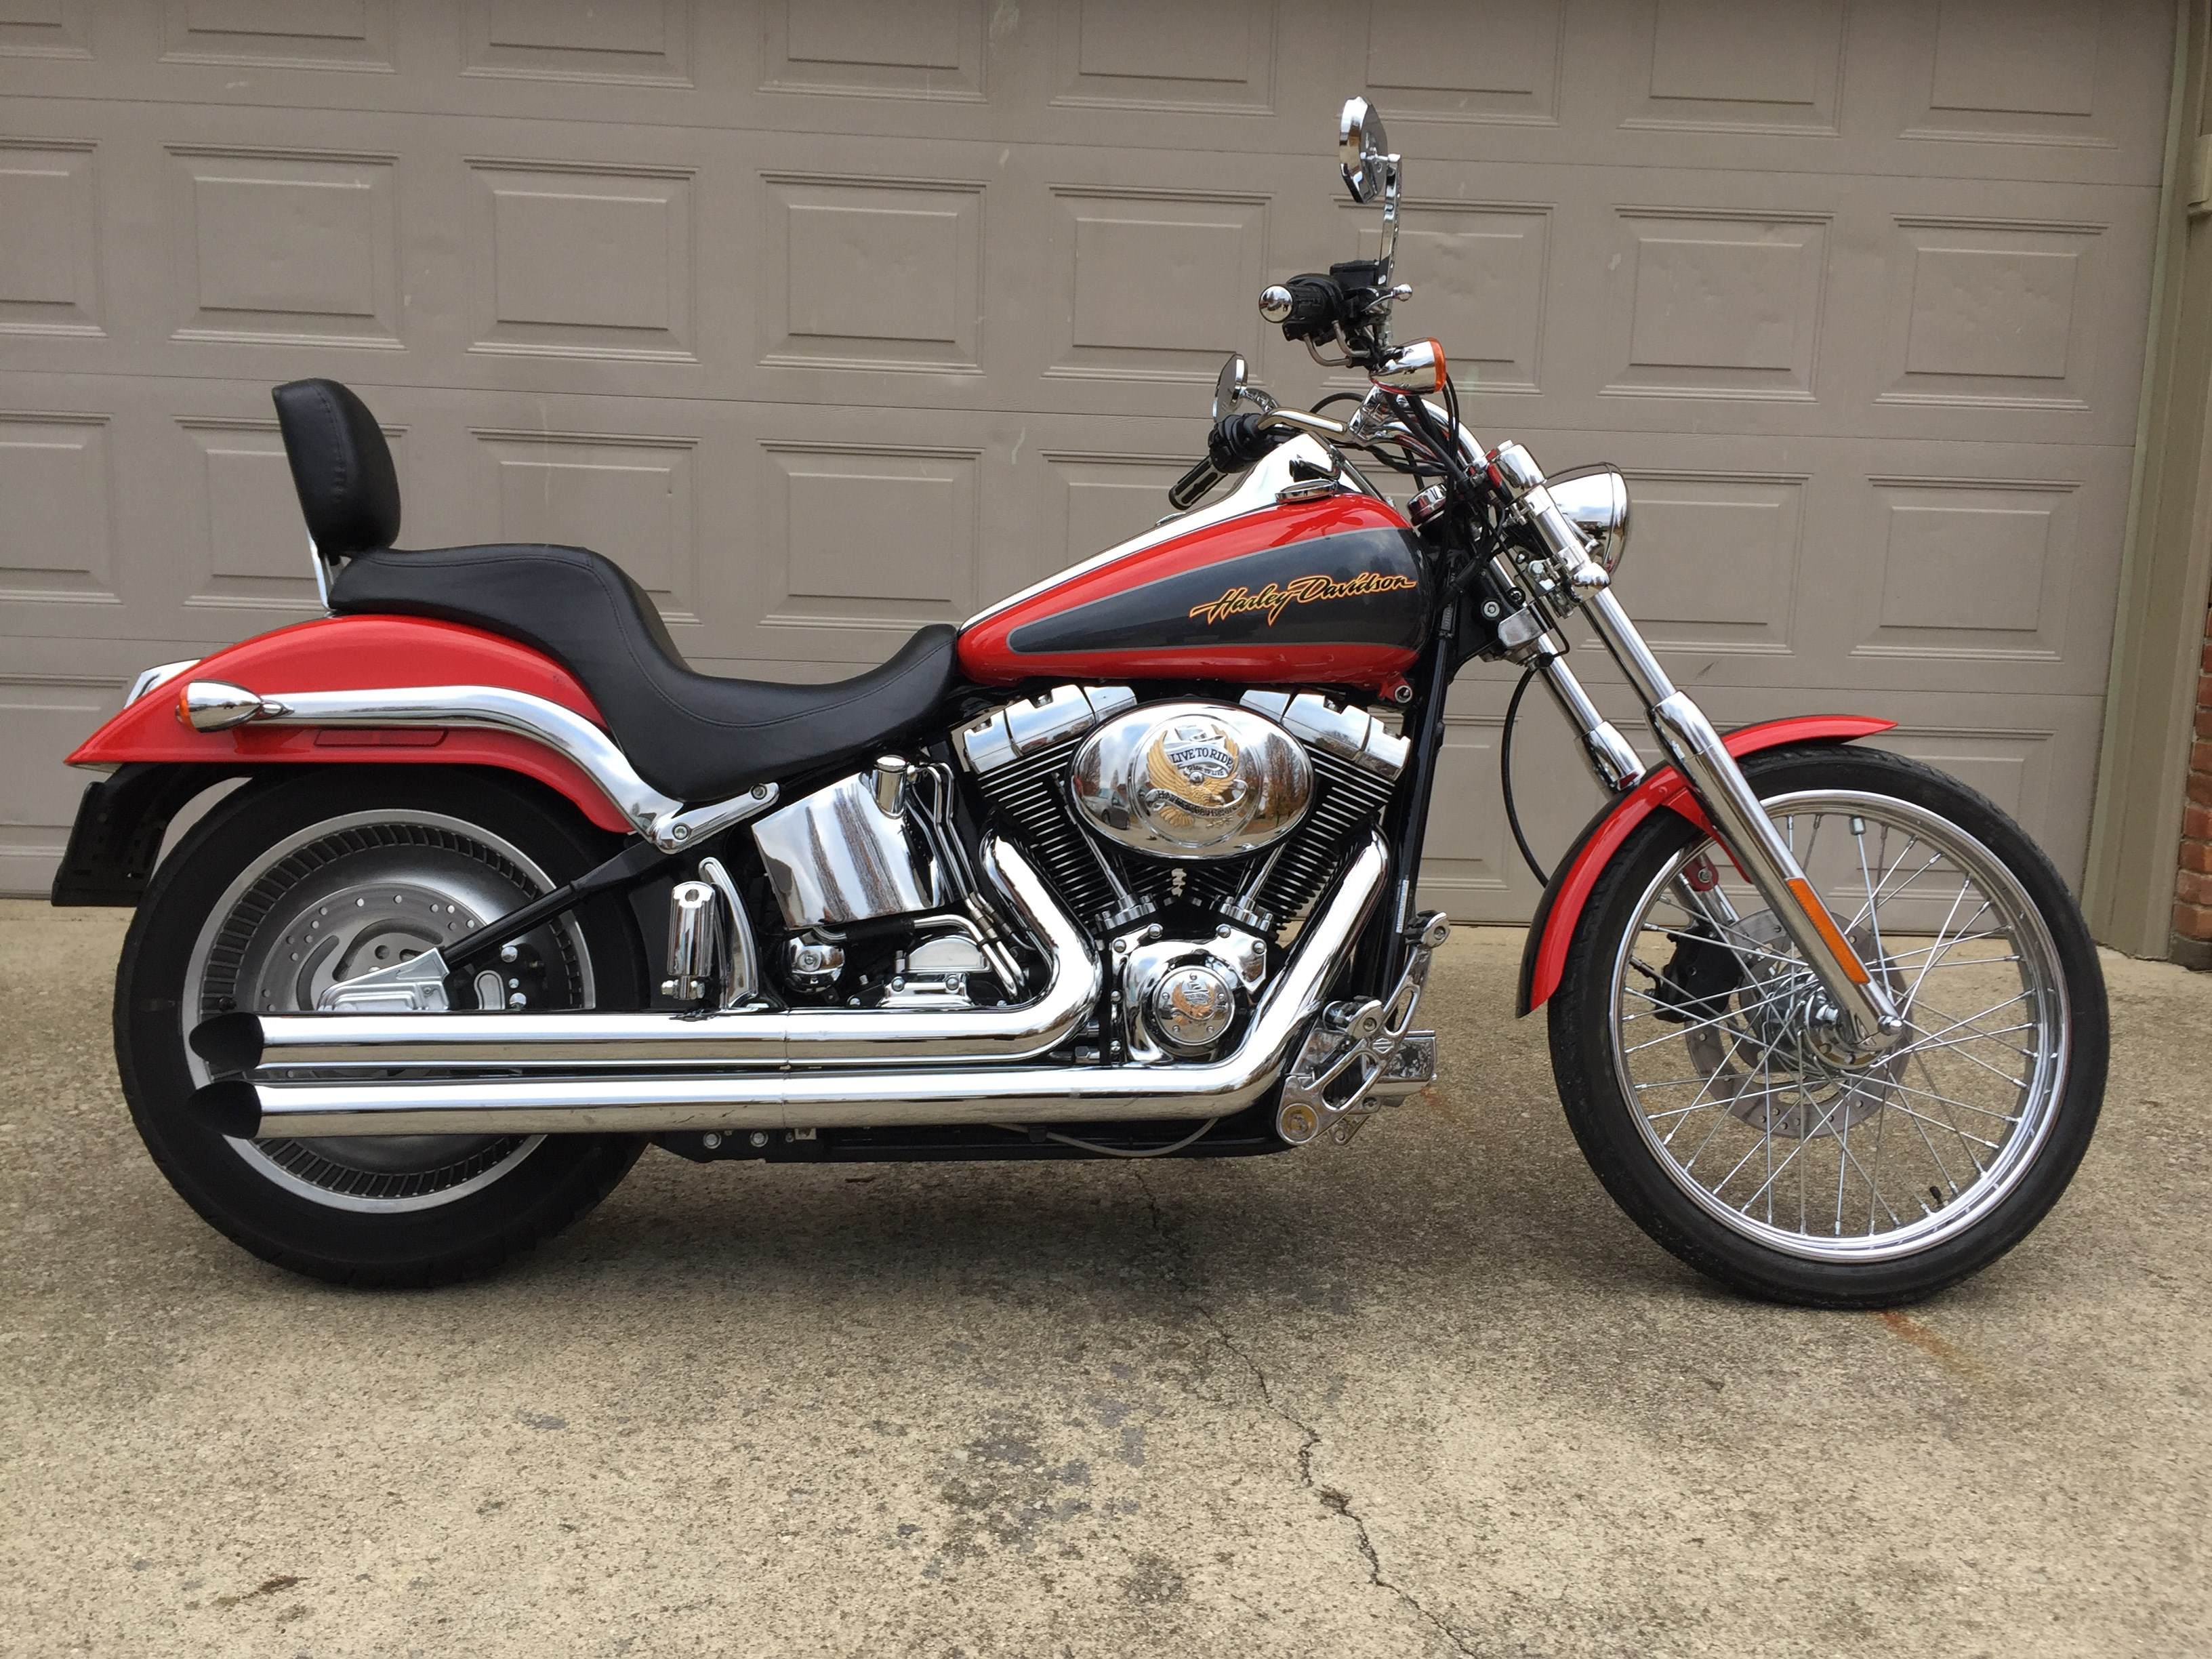 2018 Harley Davidson Motorcycles For Sale Texas >> All New & Used Harley-Davidson® Softail Deuce™ For Sale (104 Bikes, Page 1) | ChopperExchange